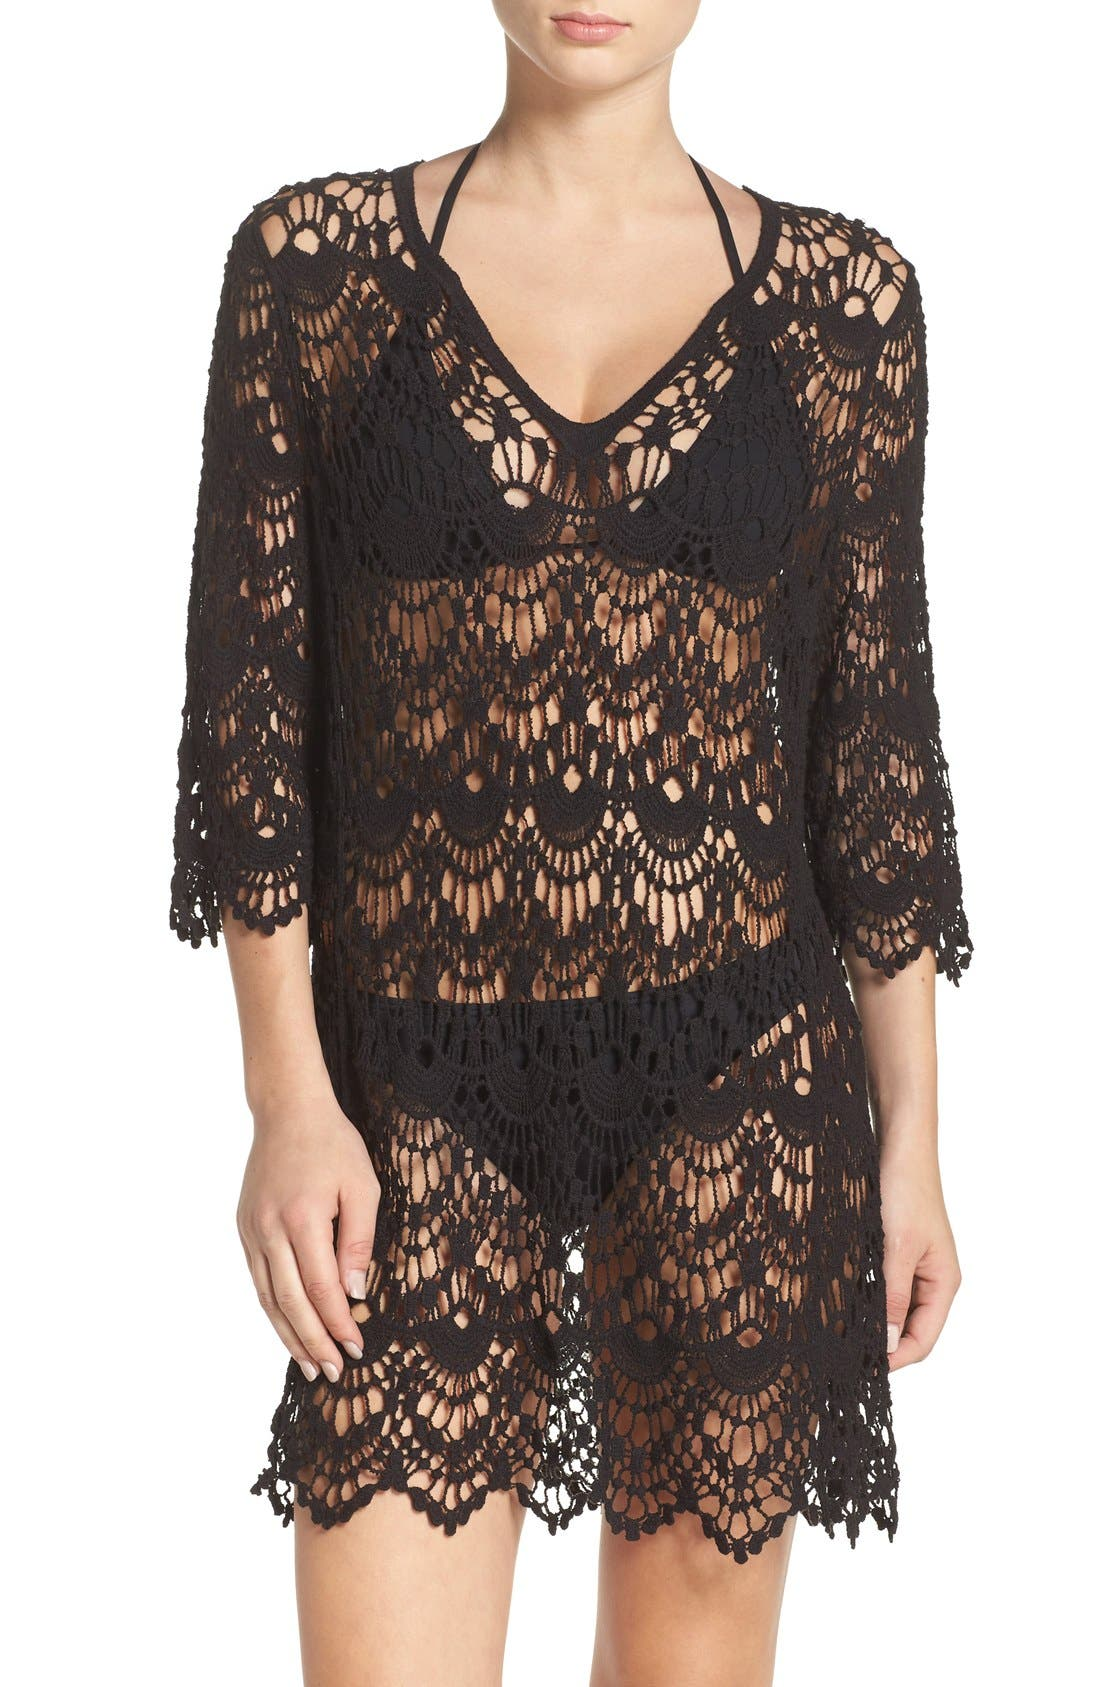 Surf Gypsy Crochet Cover-Up Tunic